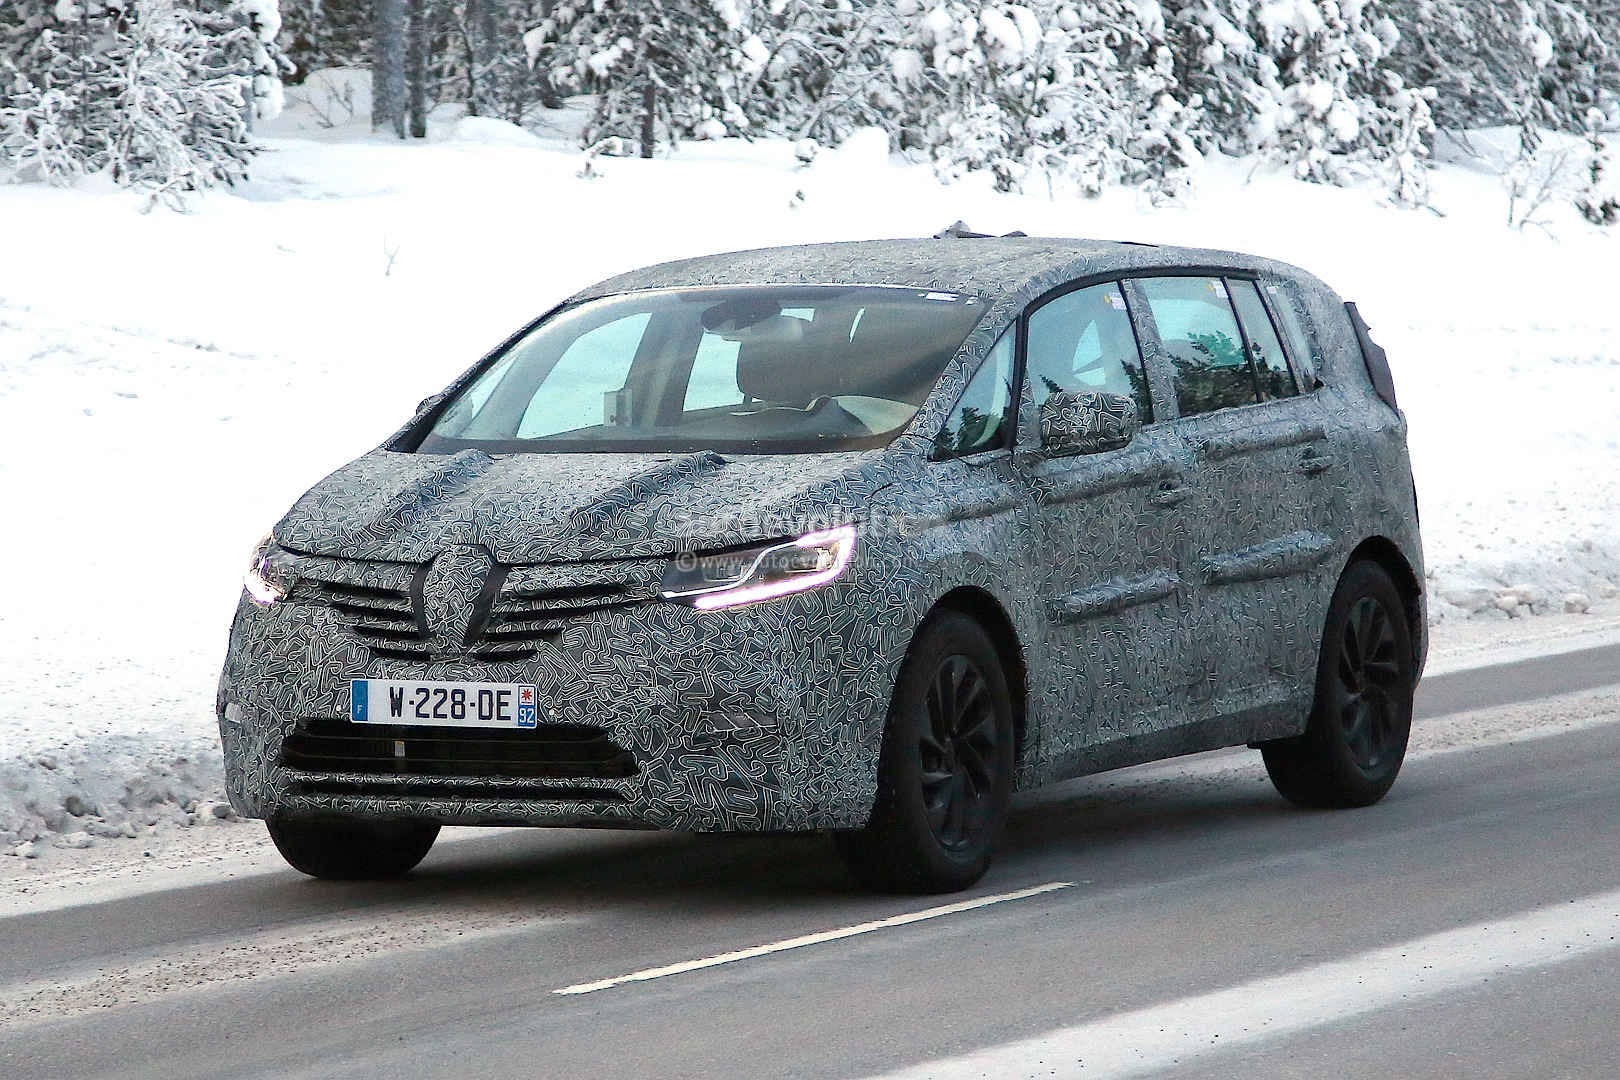 spyshots 2015 renault espace looks like initiate paris concept autoevolution. Black Bedroom Furniture Sets. Home Design Ideas